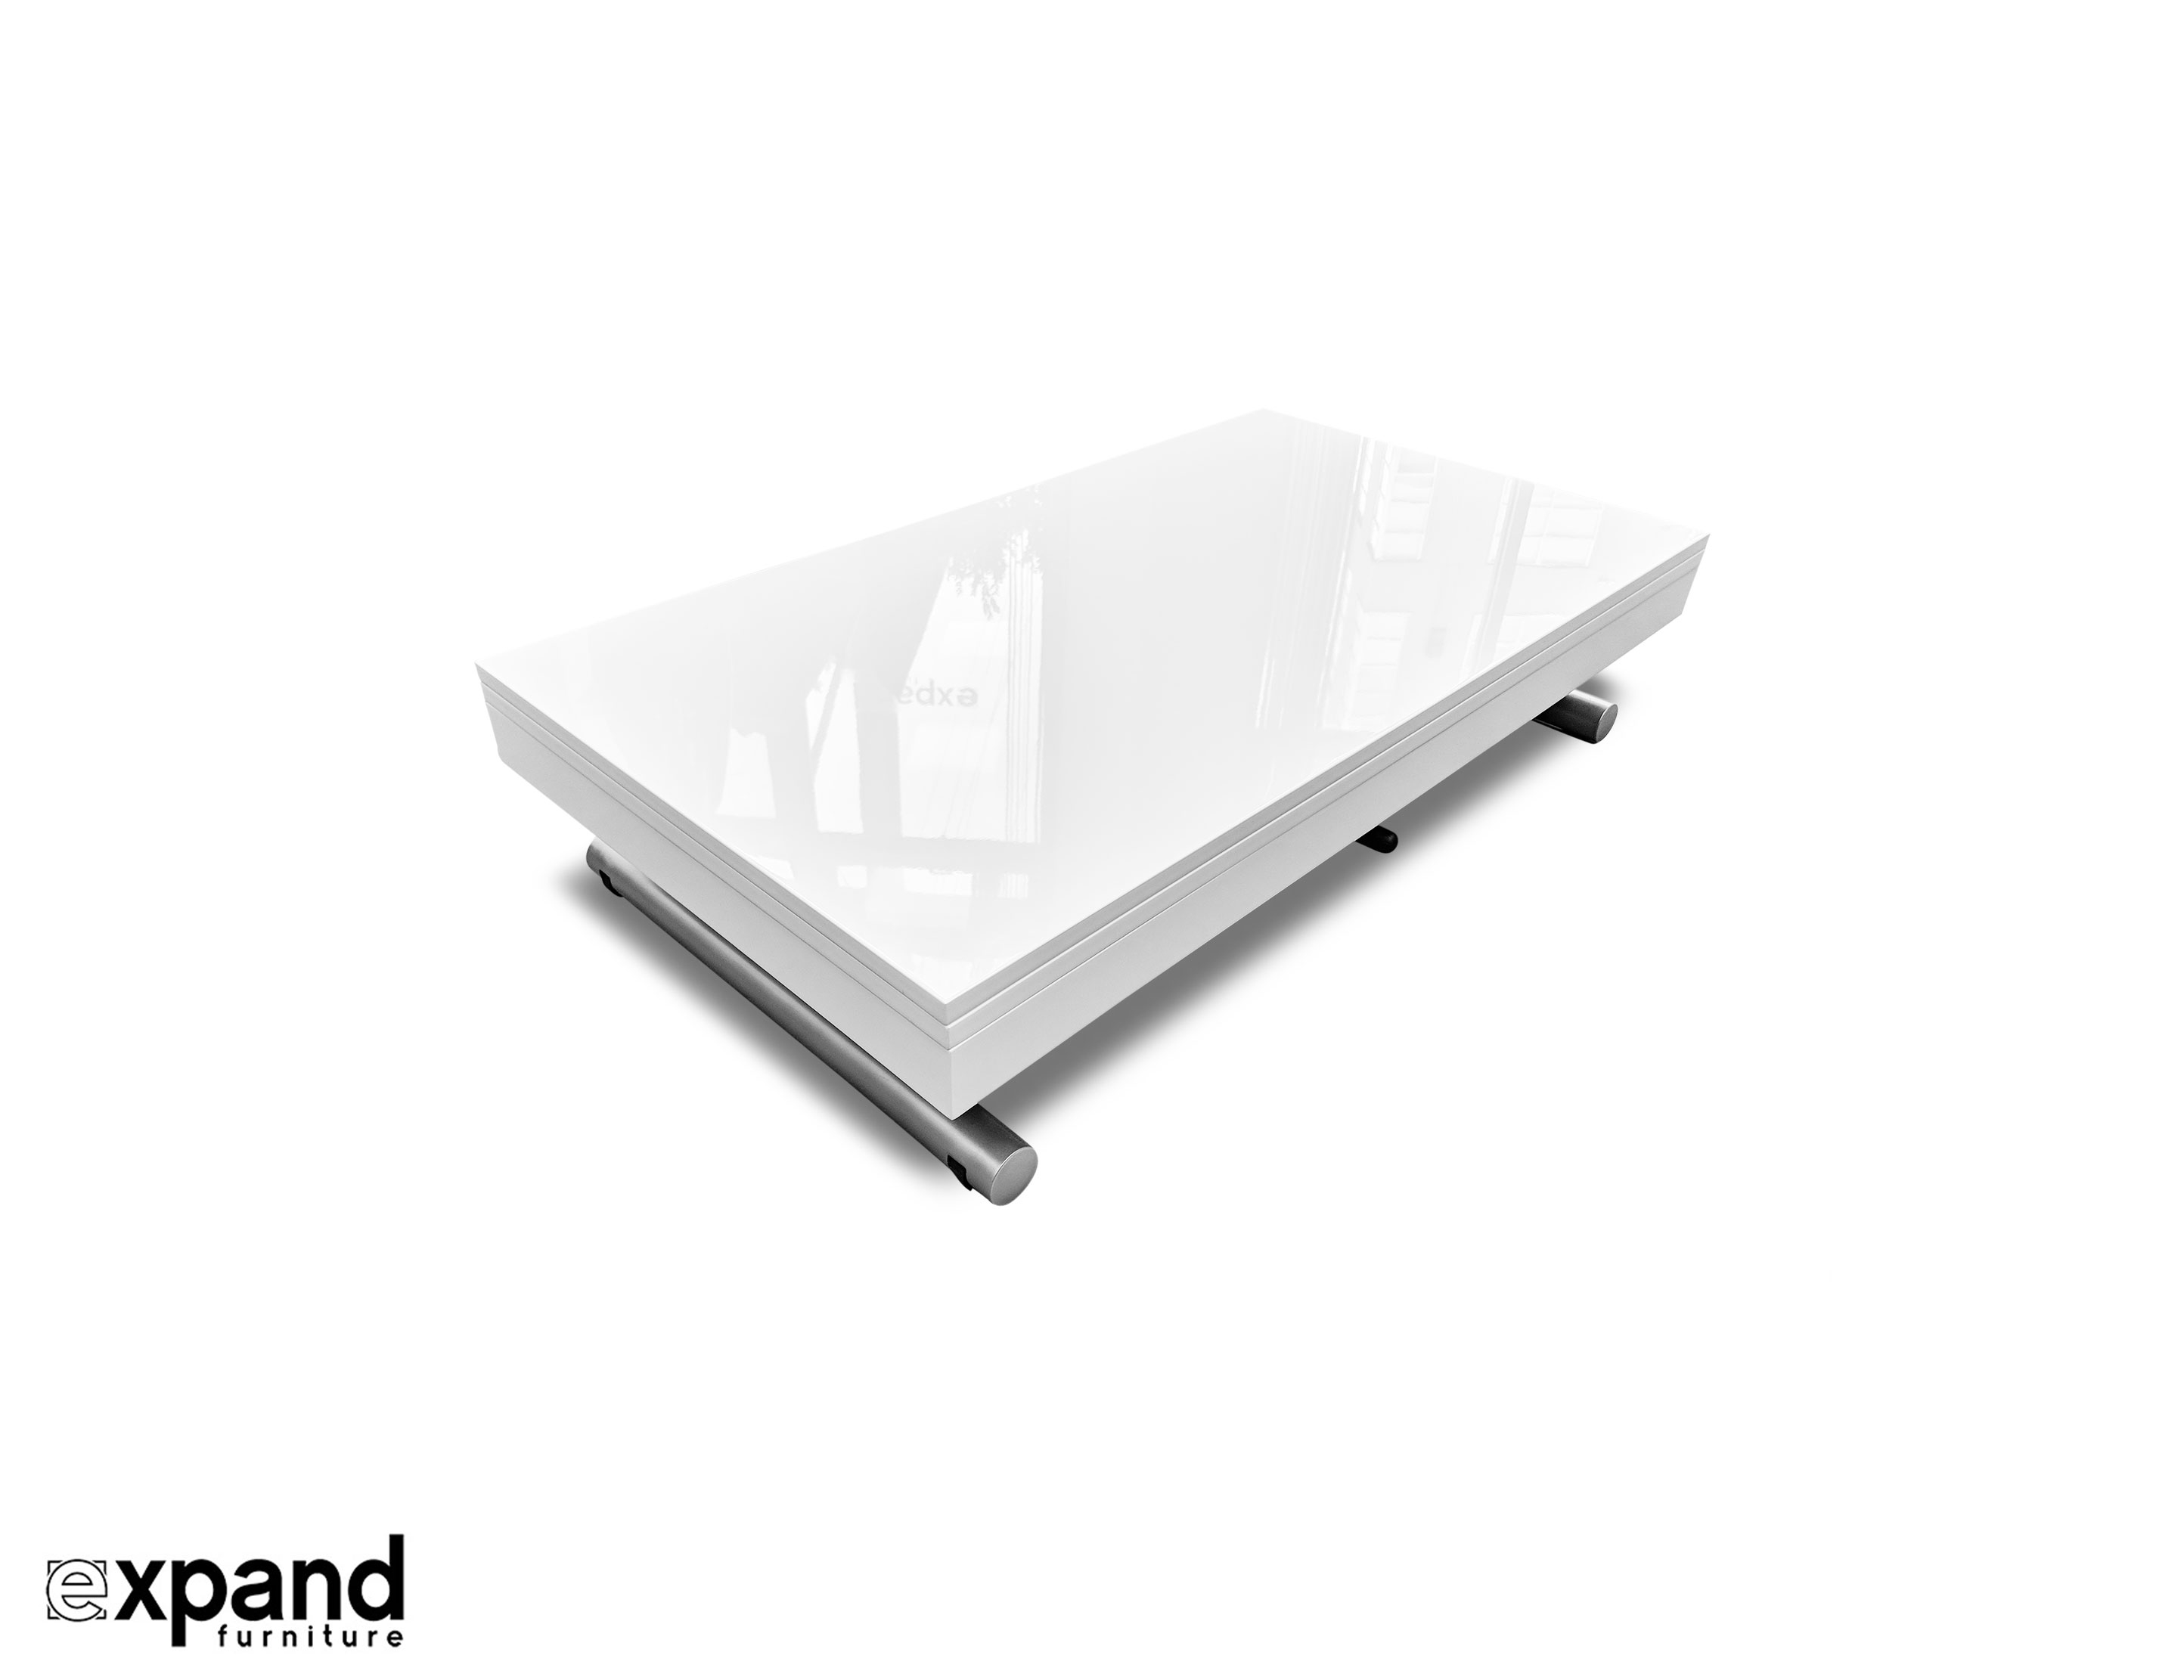 Alzare Small Transforming Coffee Table Expand Furniture Folding with regard to dimensions 2888 X 2222